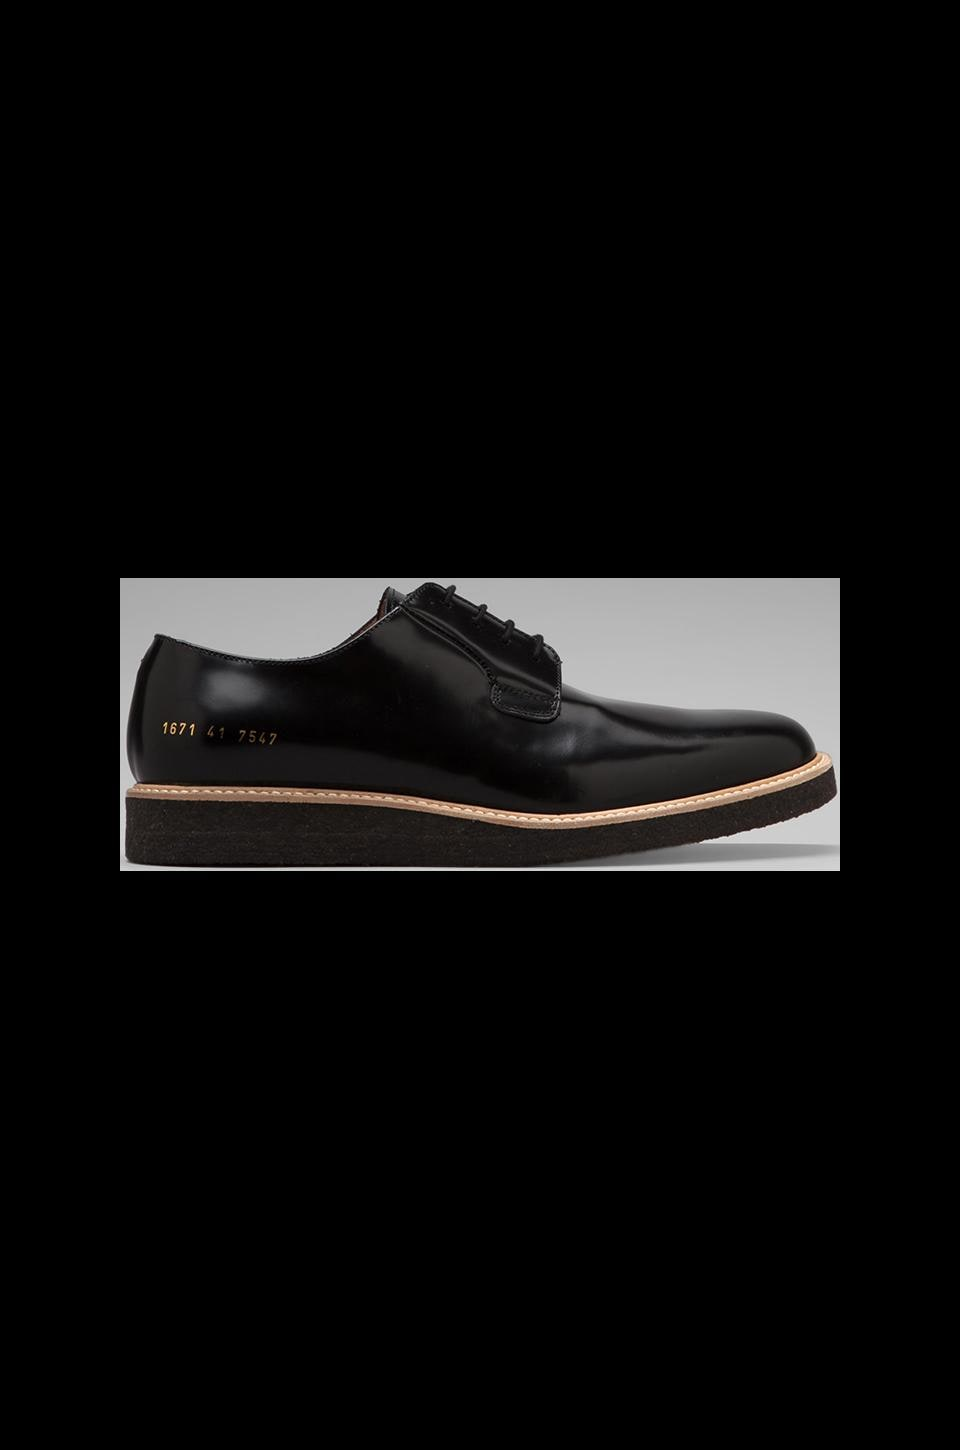 Common Projects Derby Shiny in Black